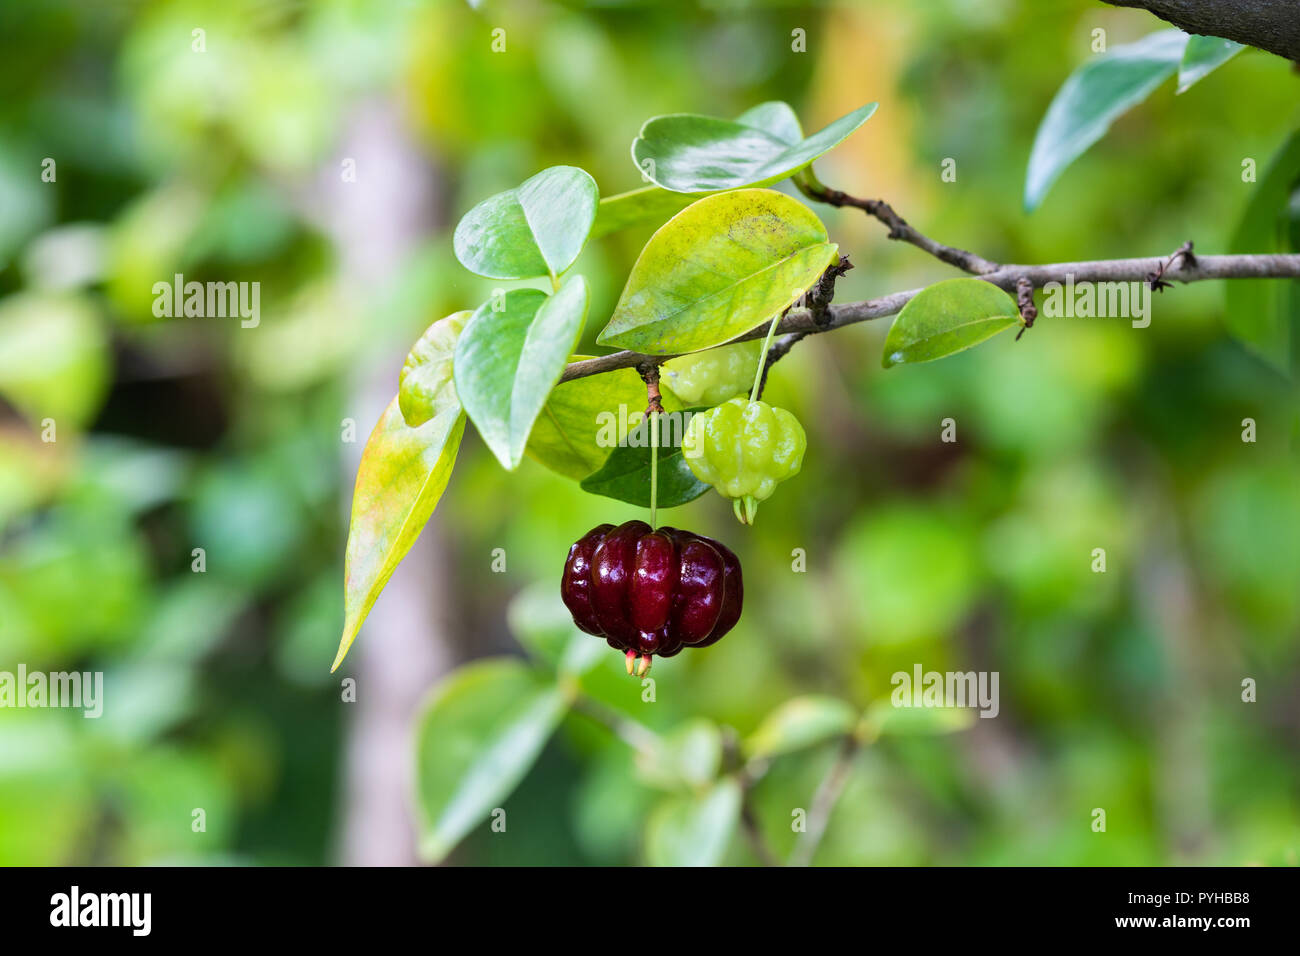 Solitary ripe red Suriname cherry (eugenia uniflora) handing from the end of a branch; more bushes in the background. - Stock Image